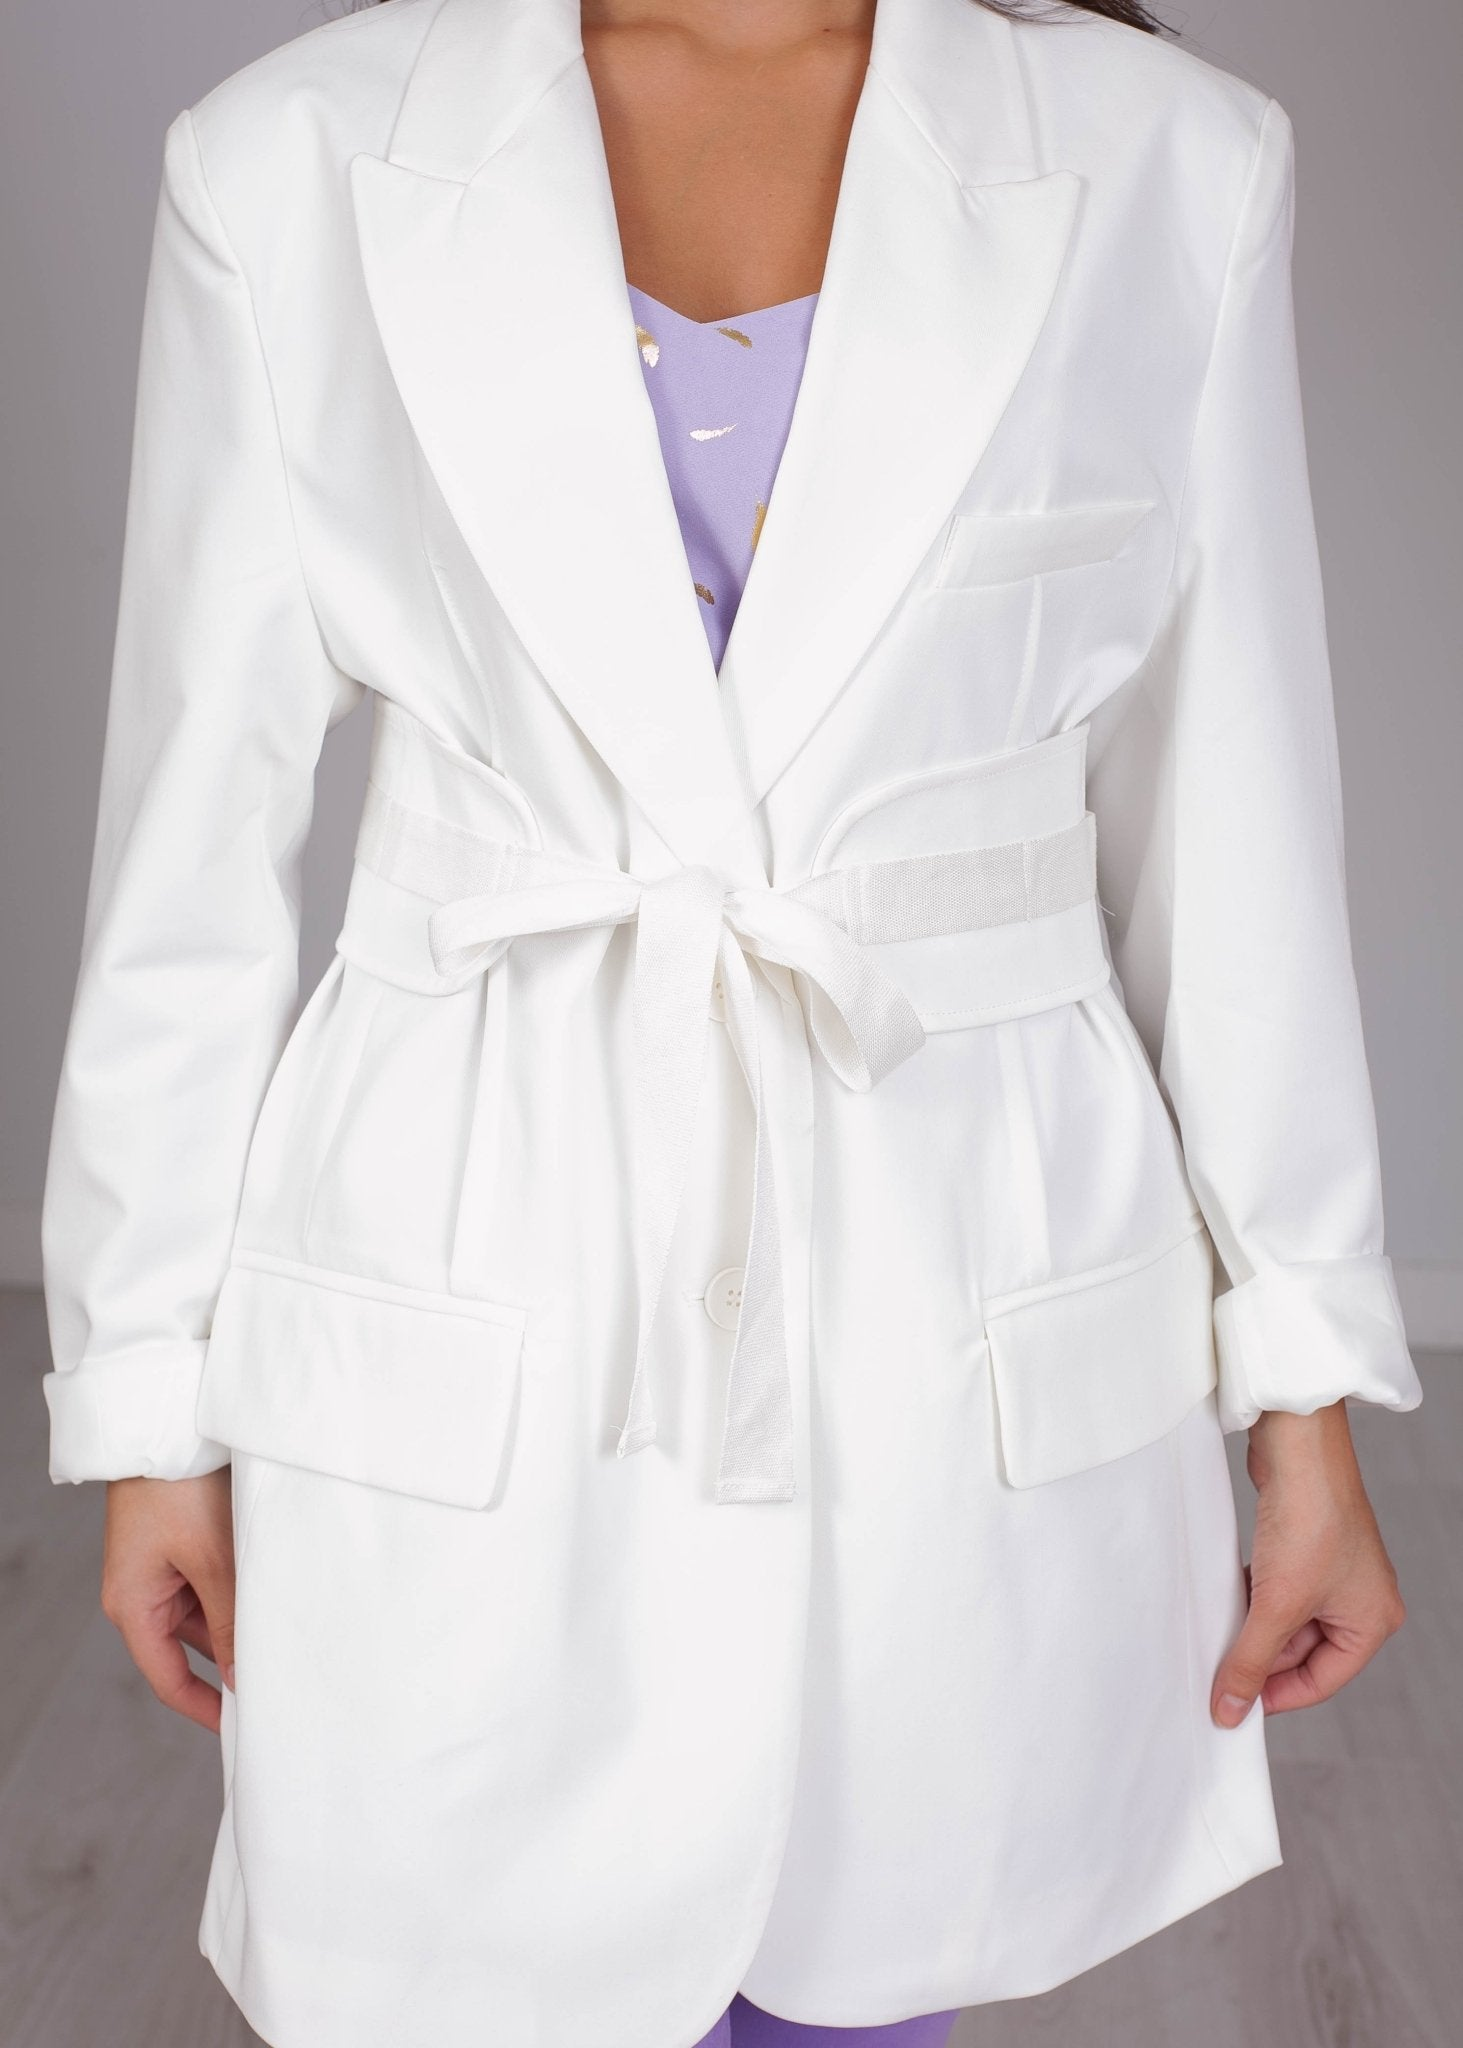 Arabella White Belt Blazer - The Walk in Wardrobe